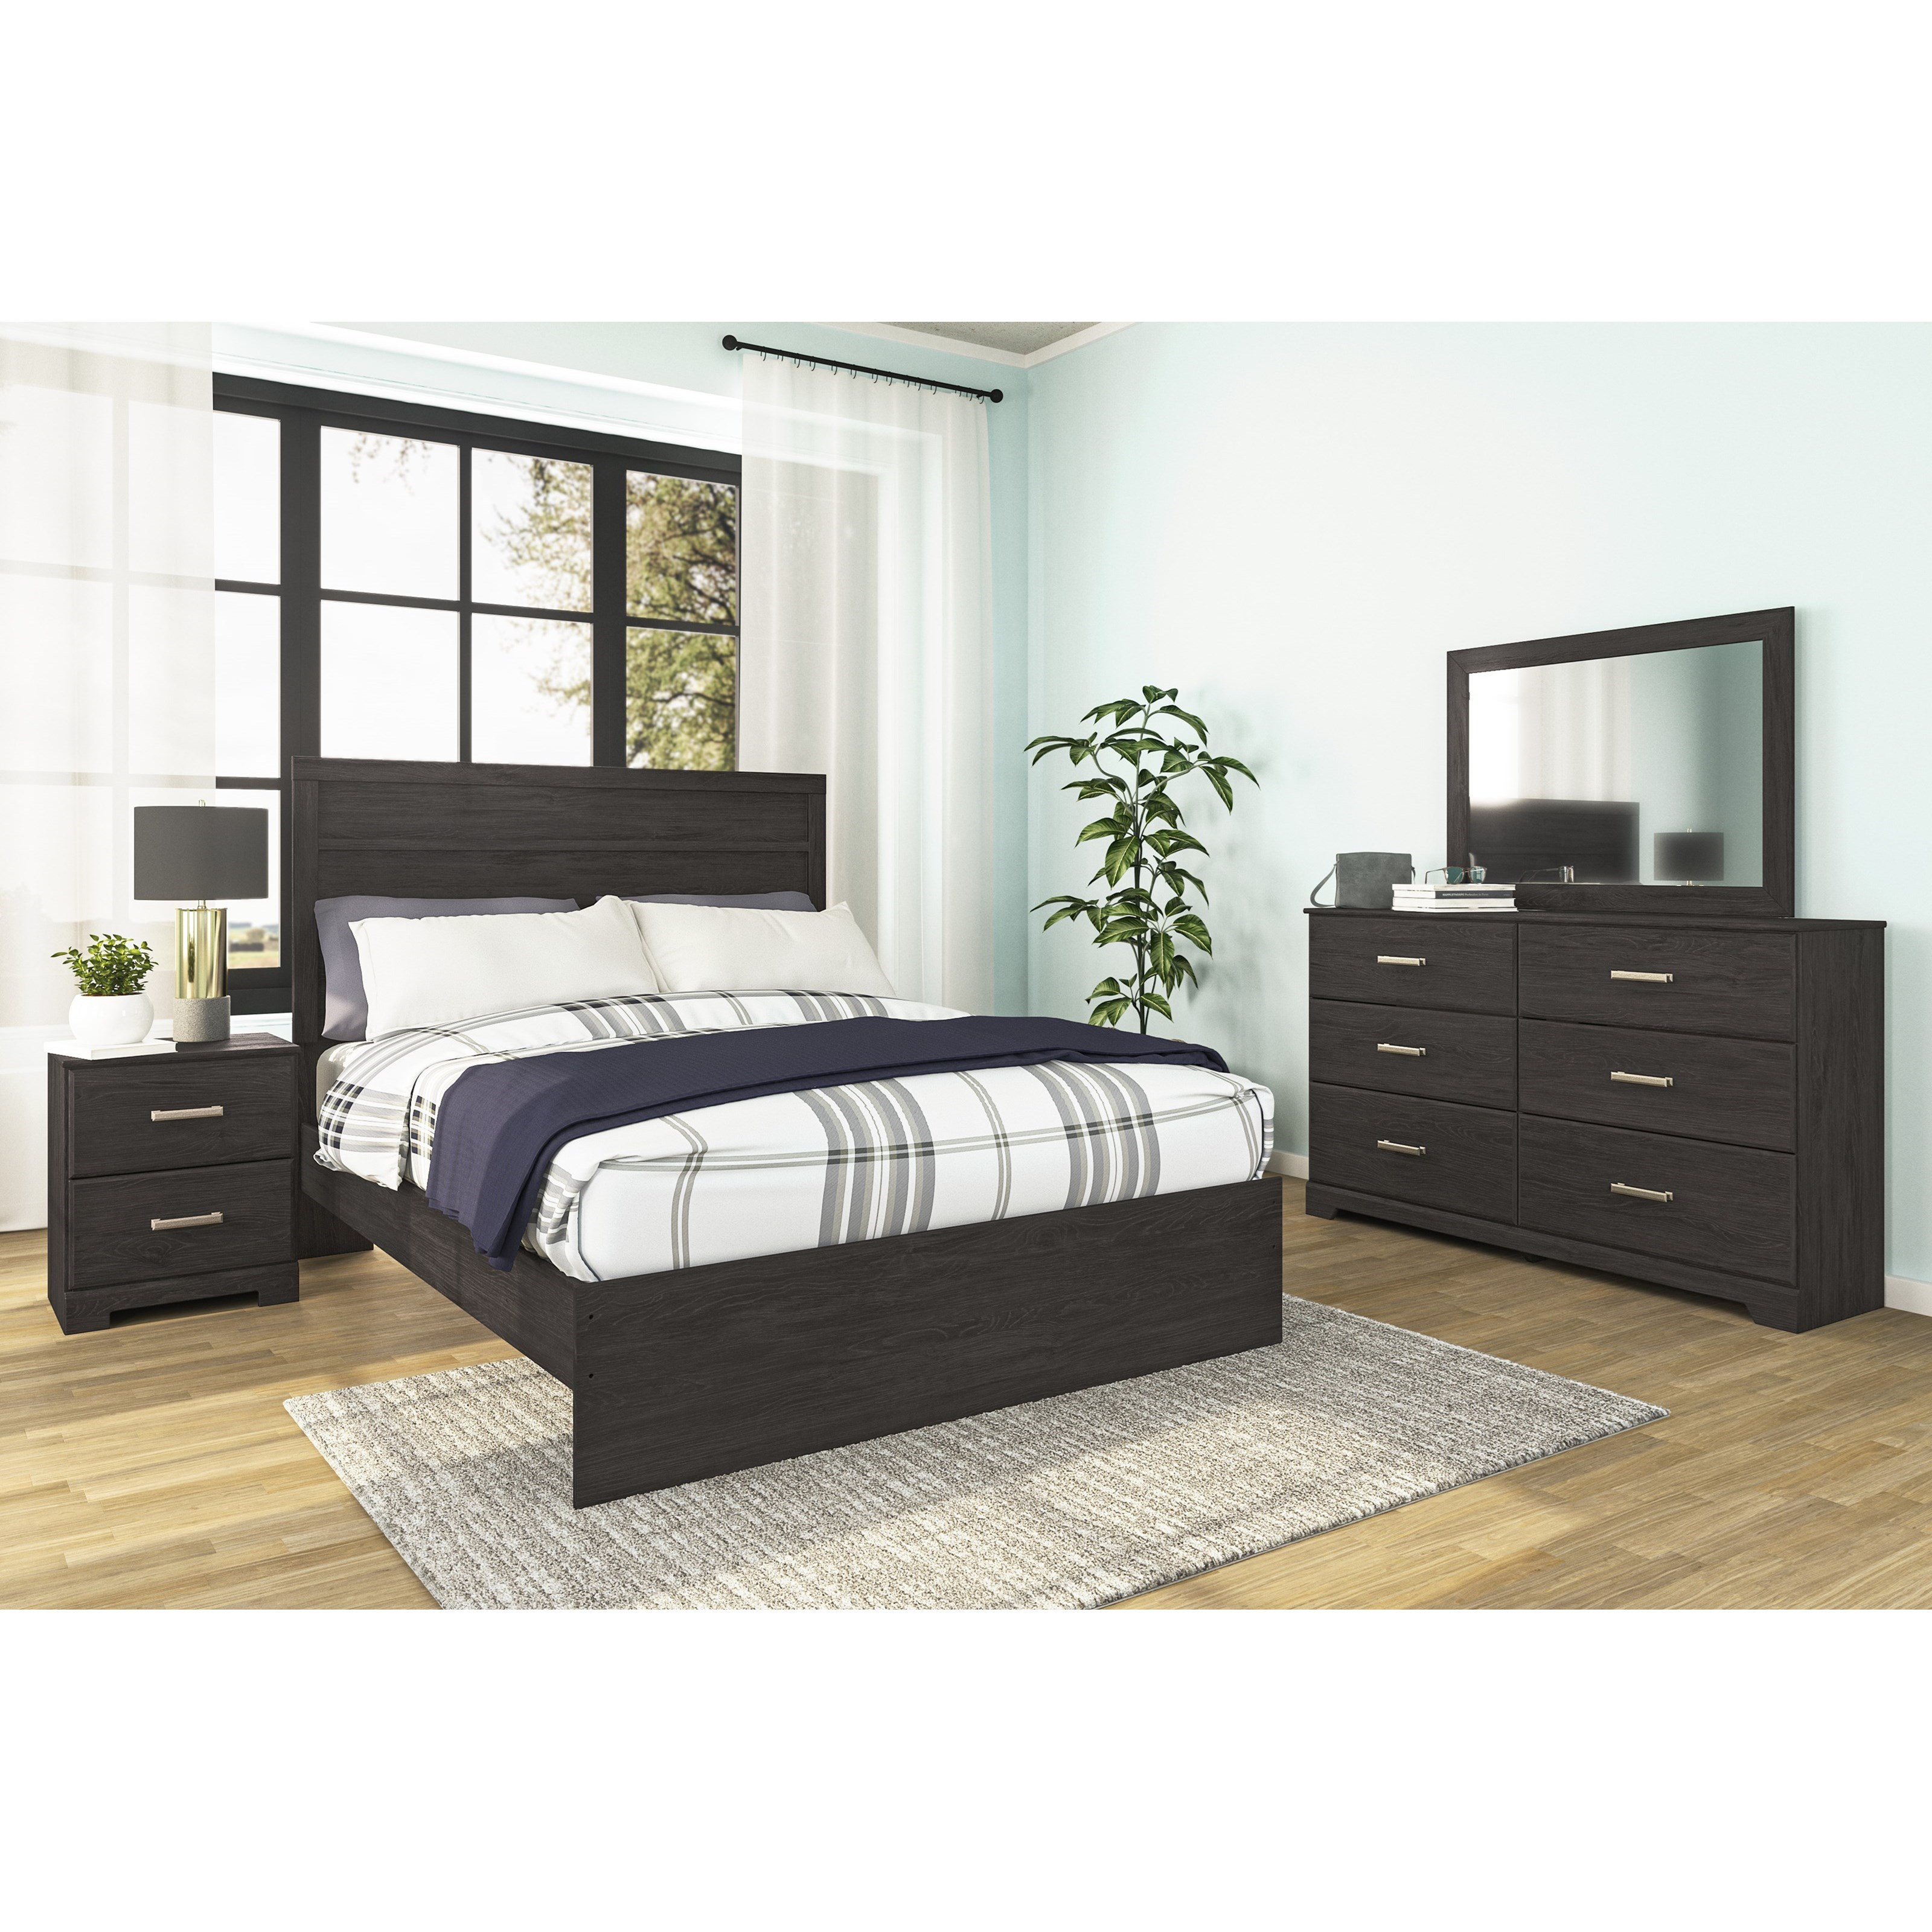 Belachime Queen Bedroom Group by Signature Design by Ashley at Northeast Factory Direct